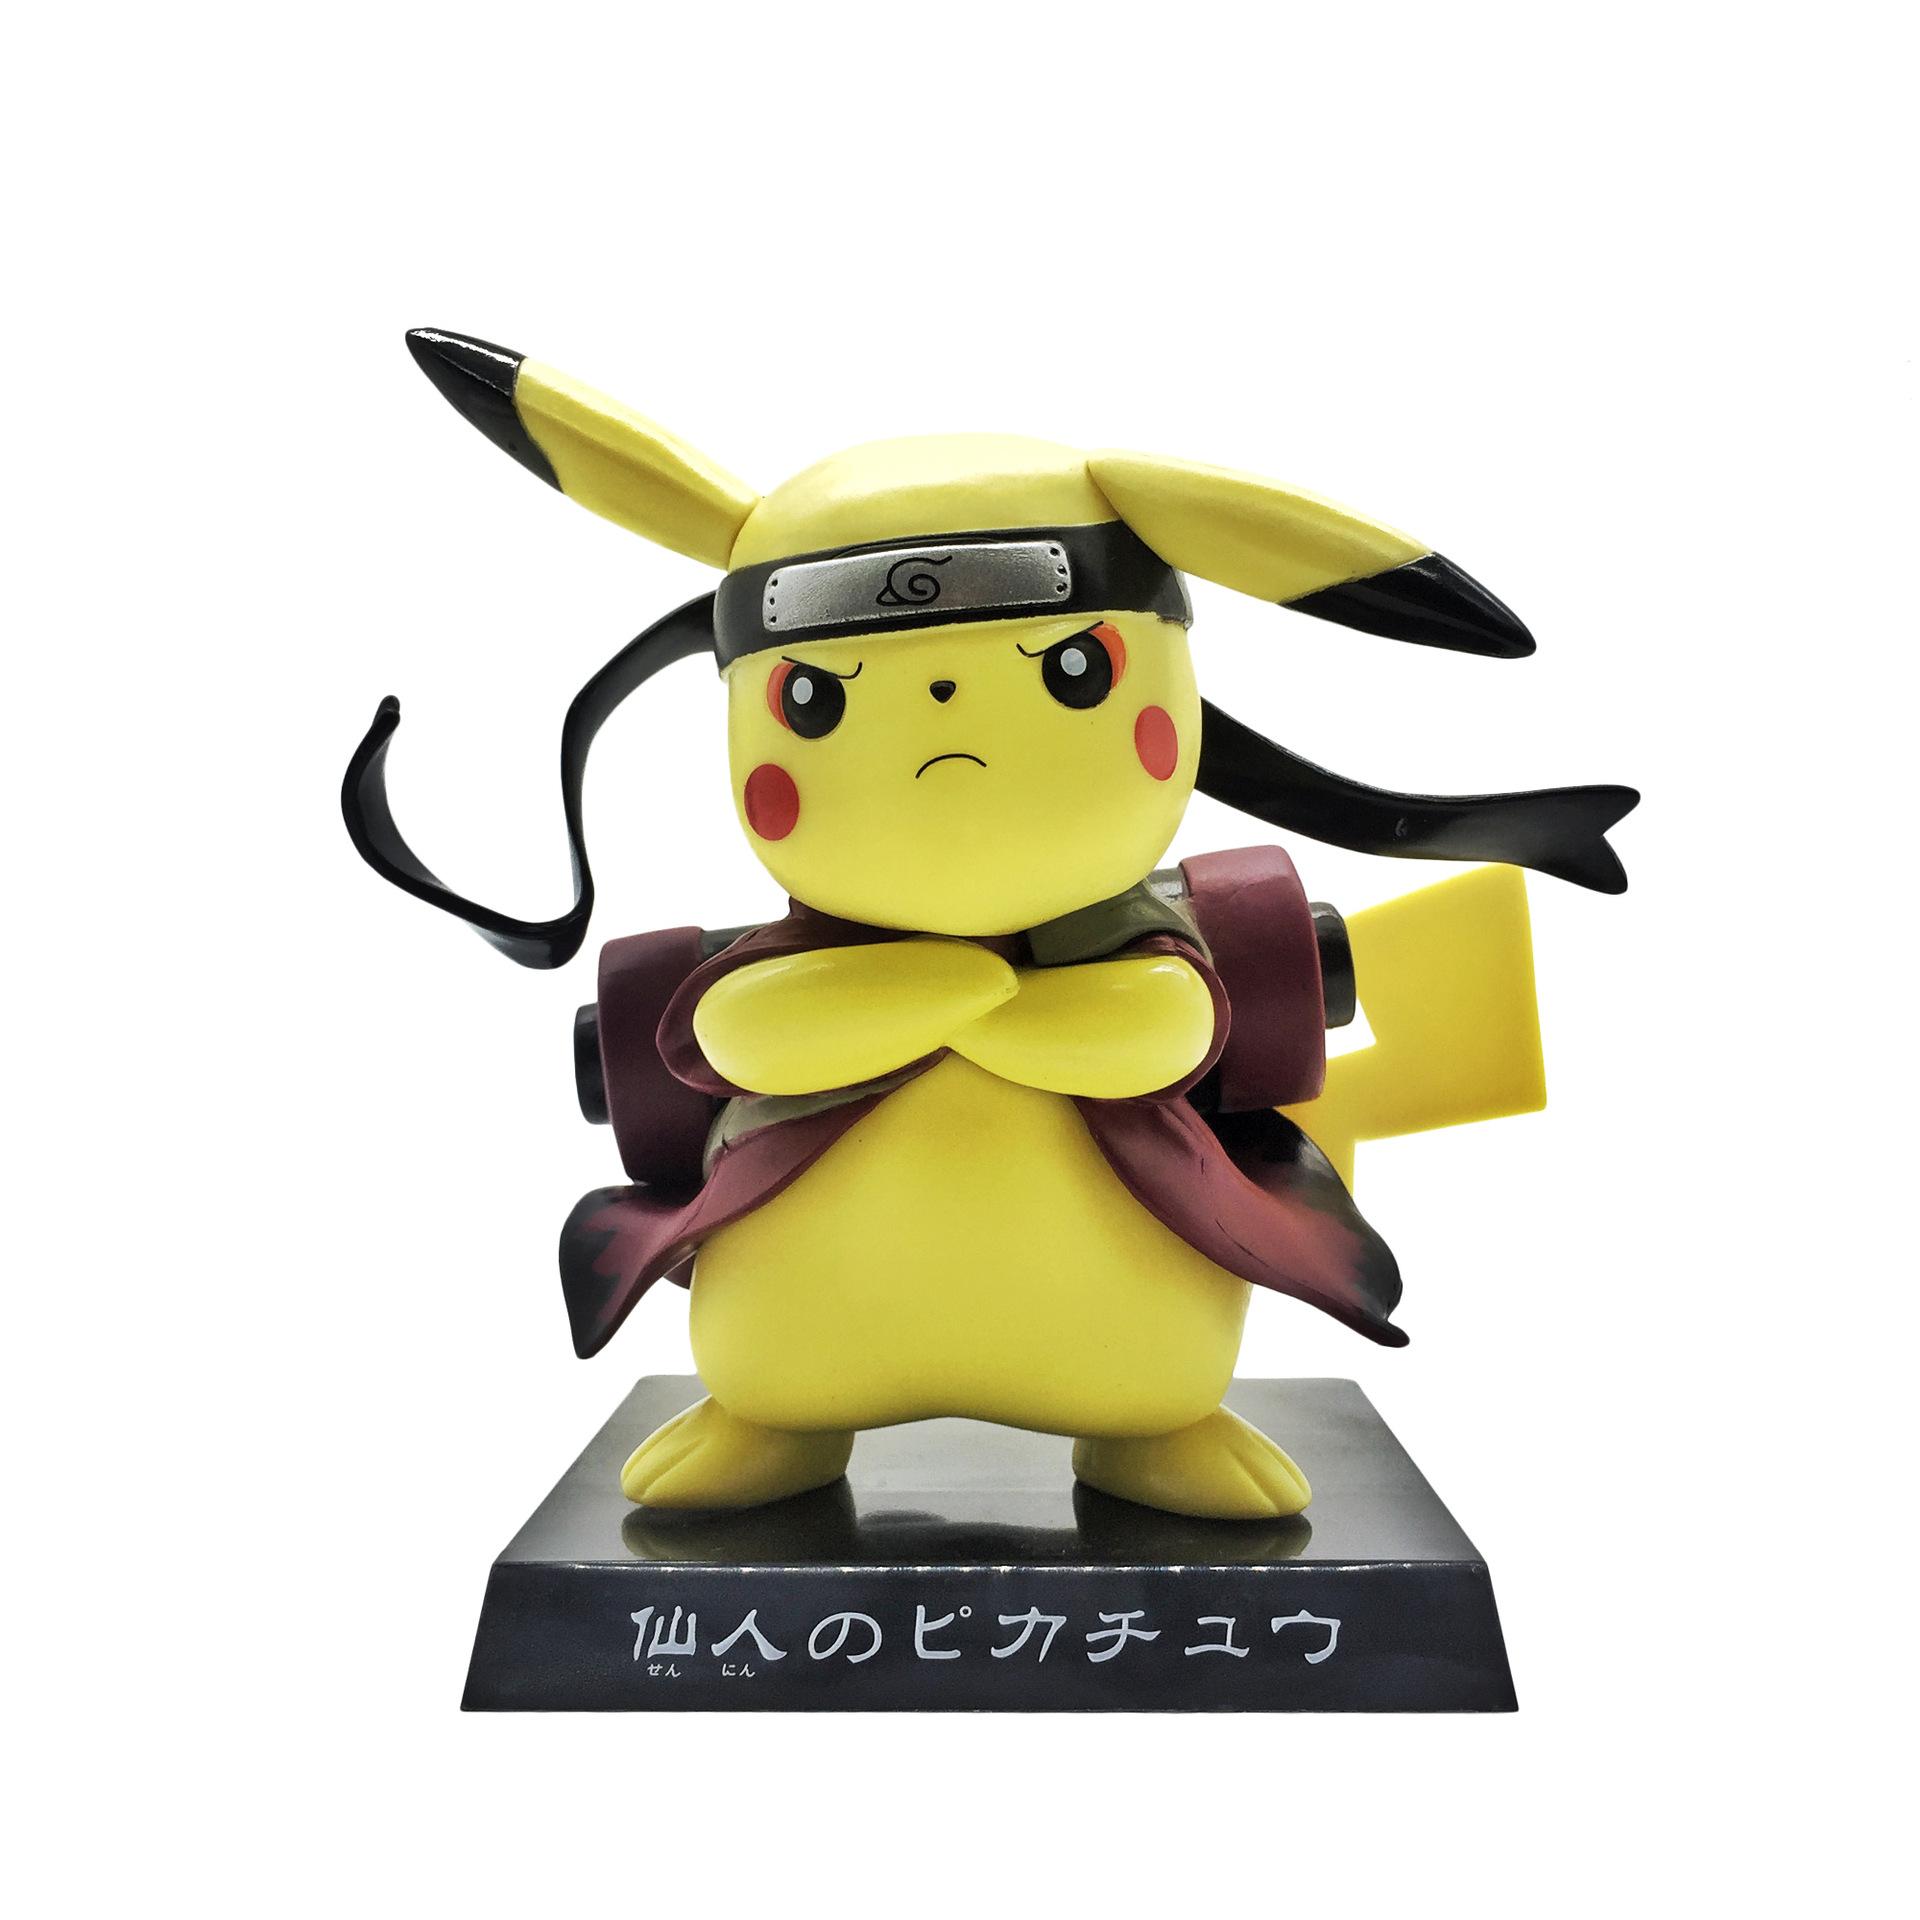 NEW 1pcs 13CM pvc Japanese anime figure pocket monster pikachu cosplay naruto action figure collectible model toys brinquedos<br><br>Aliexpress